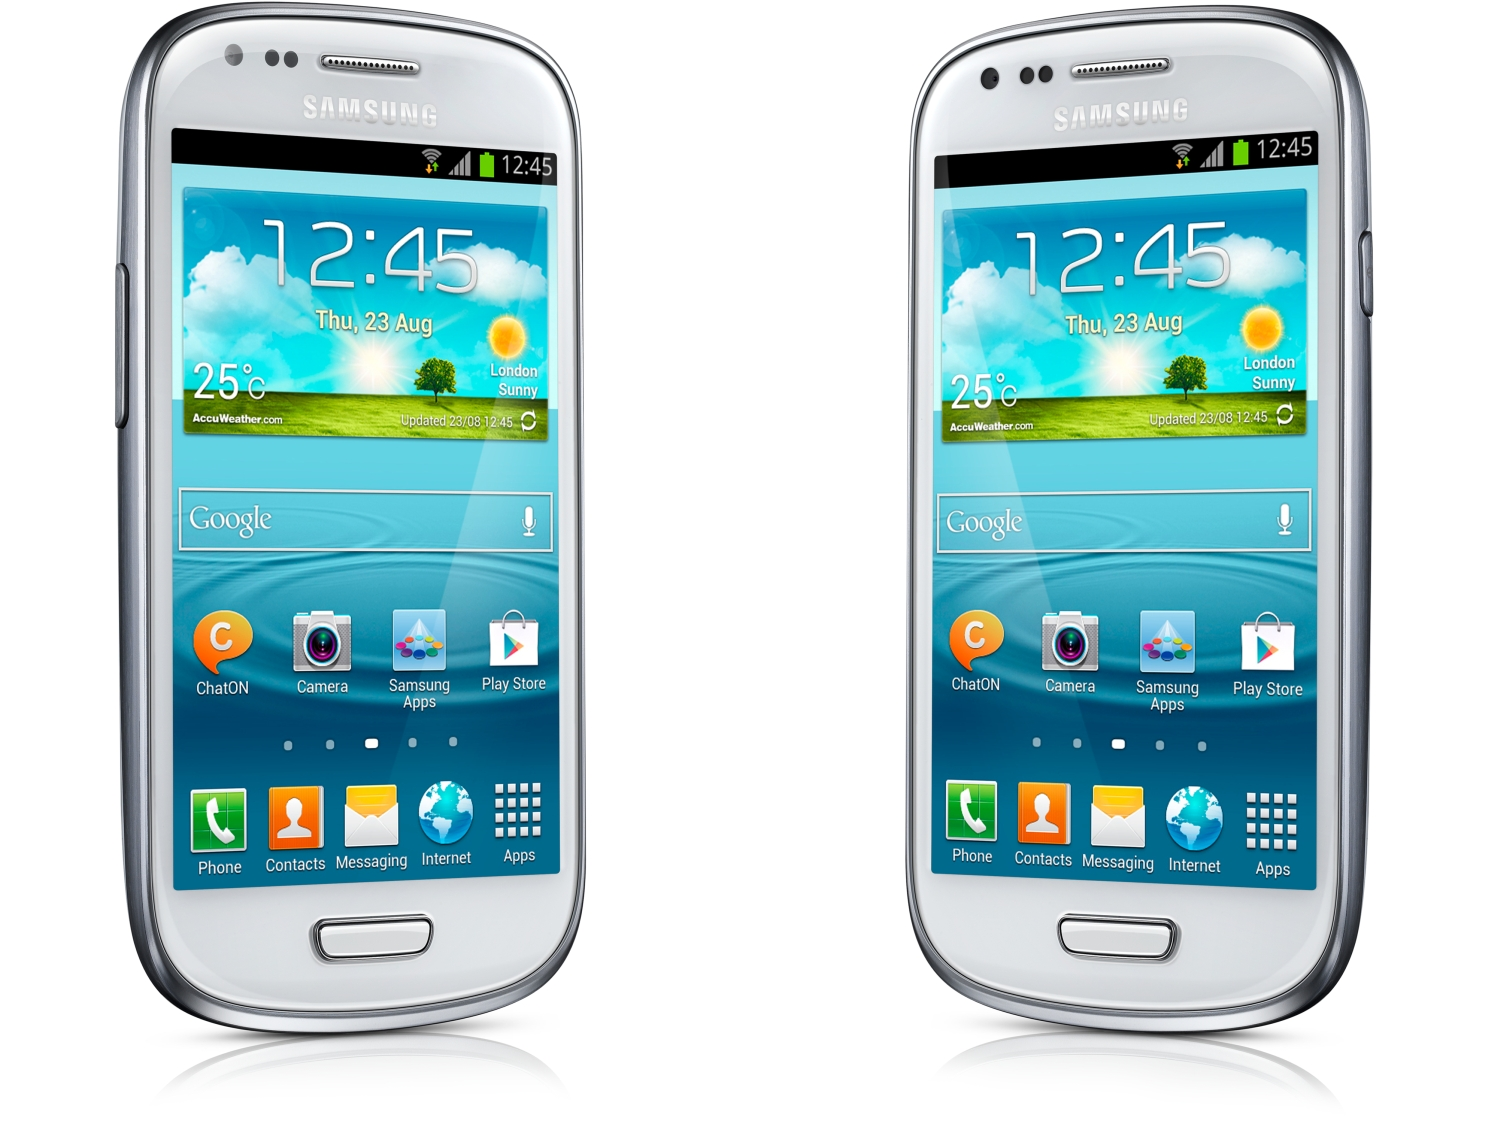 Cara Install Update Android 4.1.2 Jelly Bean pada Samsung Galaxy S3